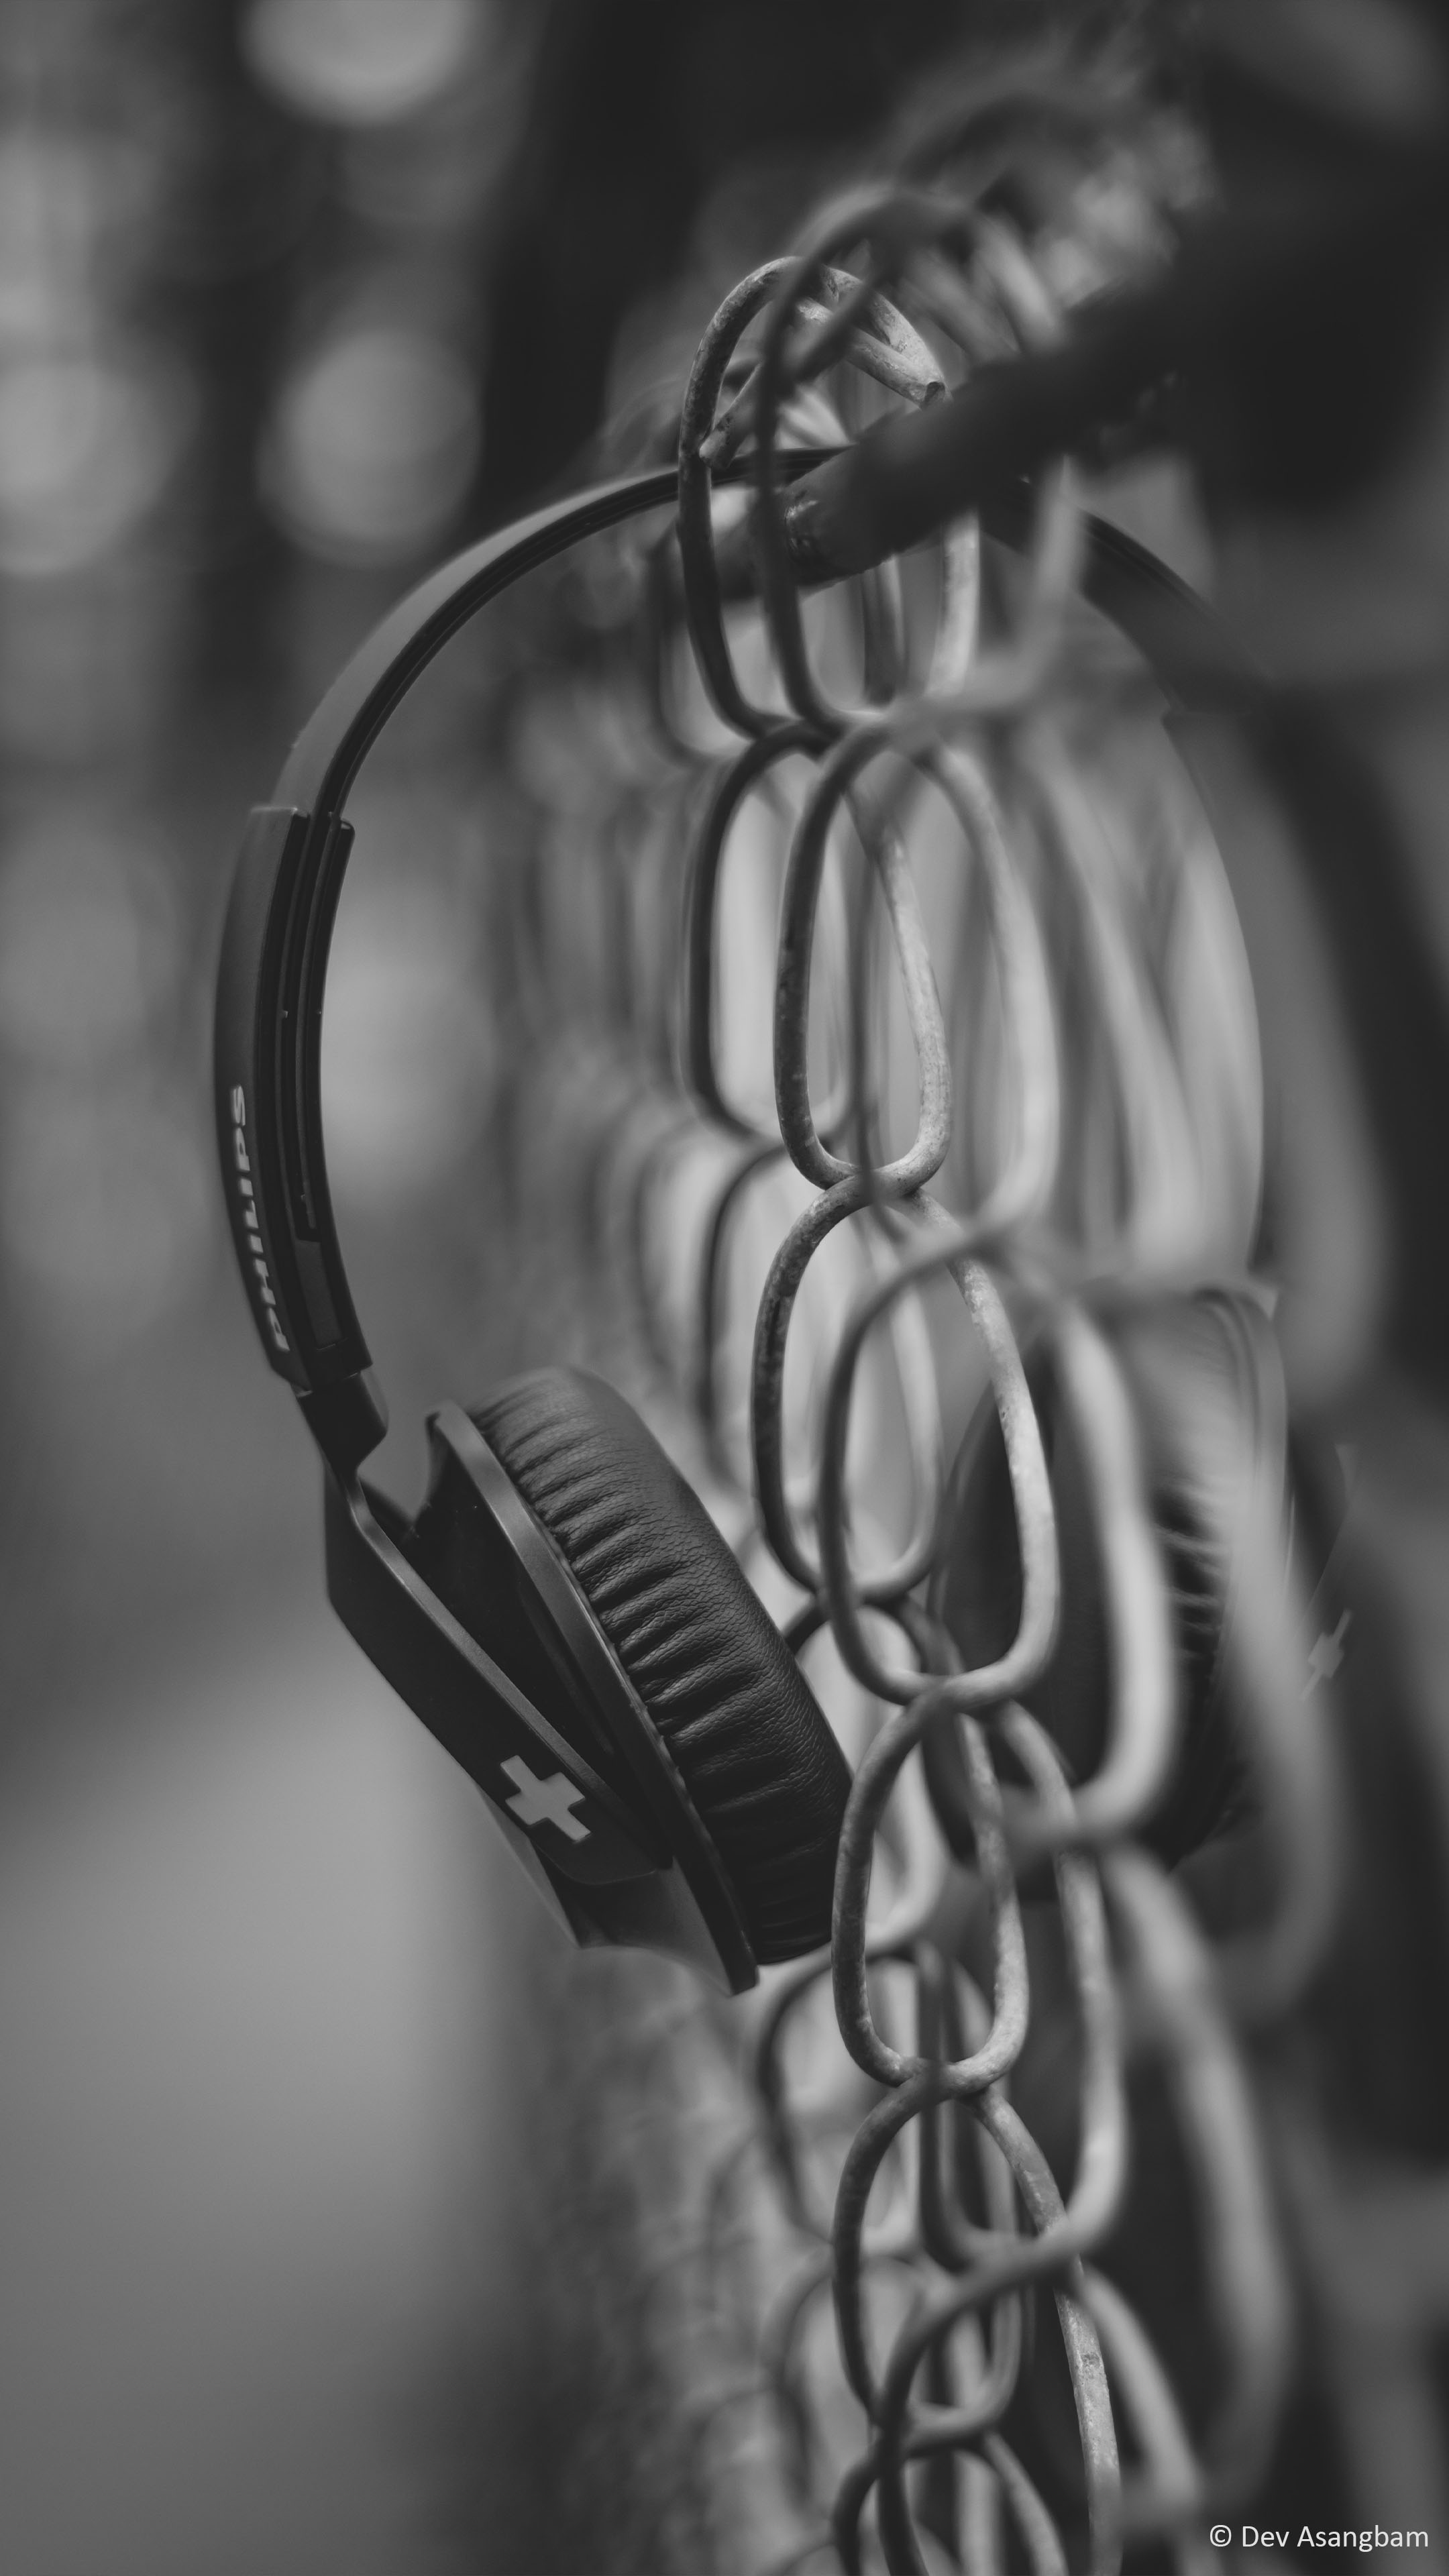 Music Headphone Black White Free 4k Ultra Hd Mobile Wallpaper